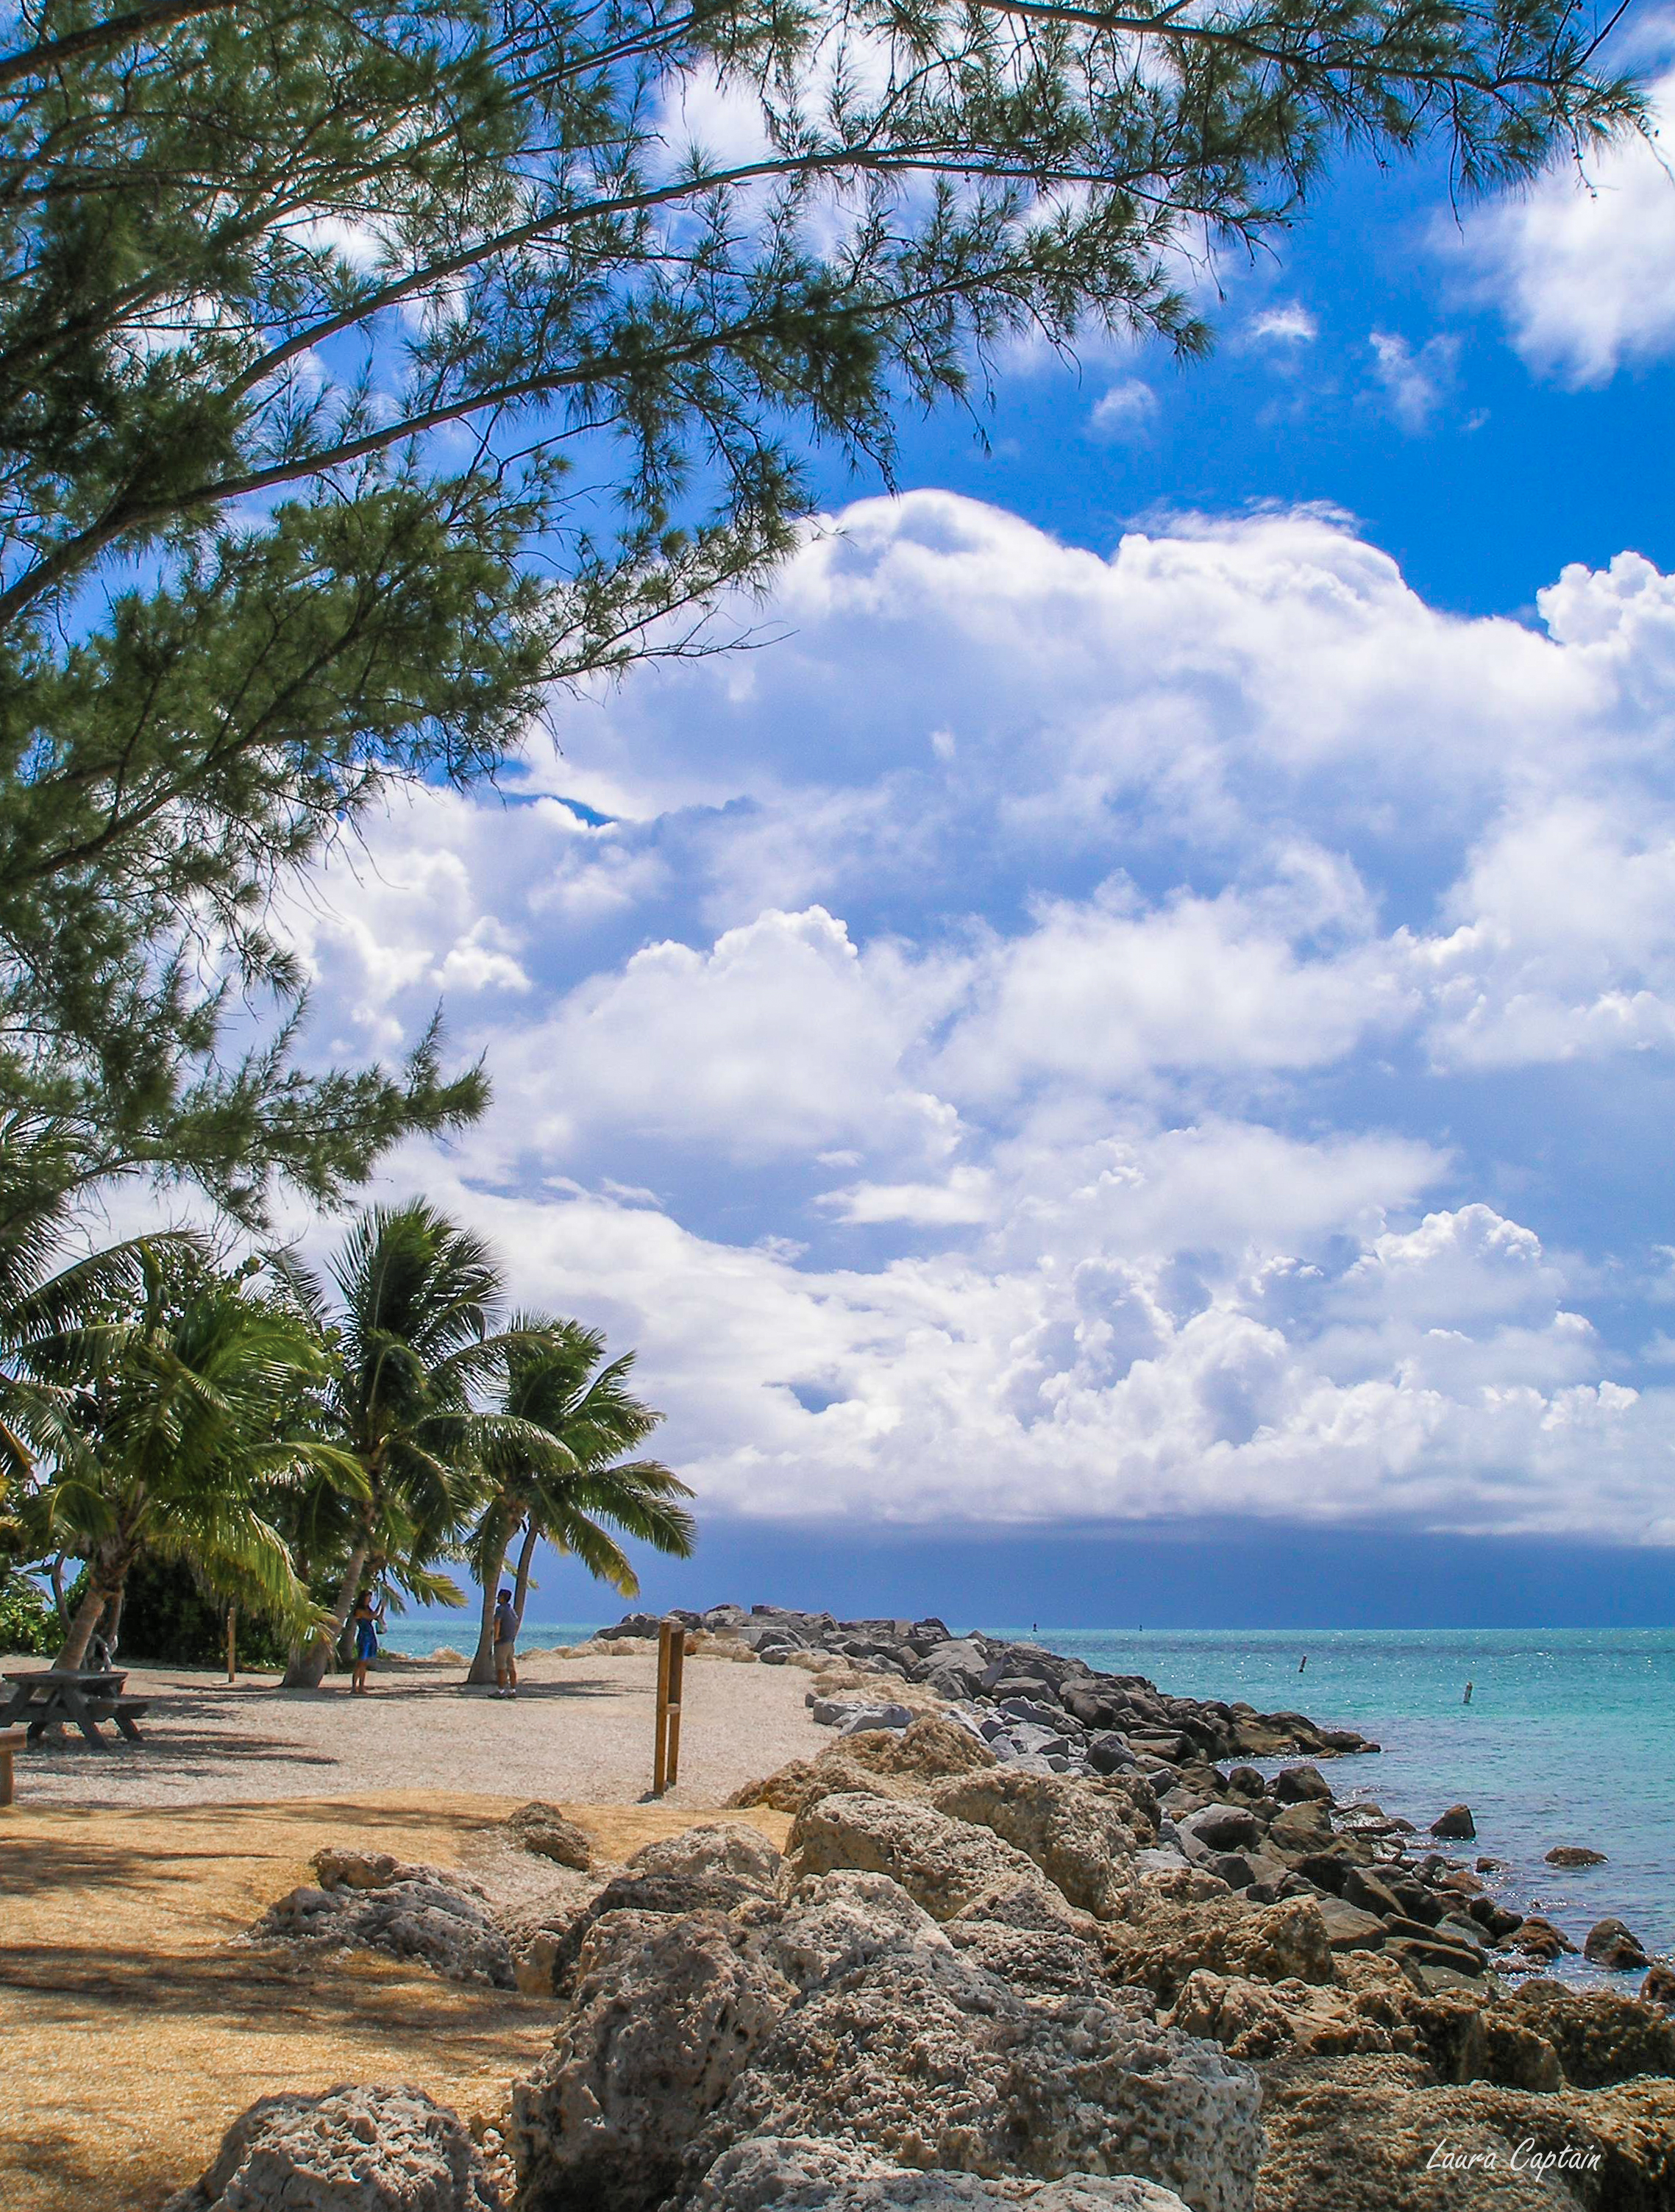 Sunny rocky beach in Fort Zachary Taylor Historic State Park in Key West FL US